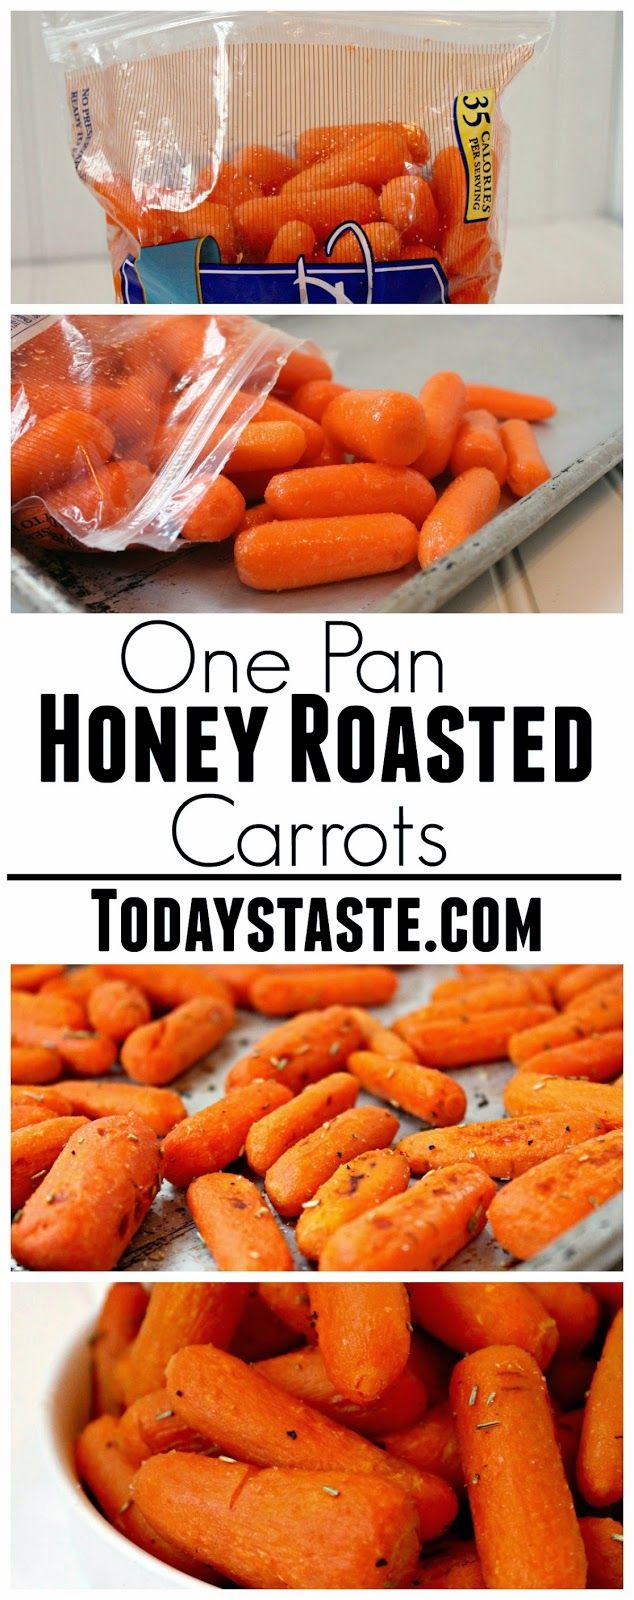 One Pan Honey Roasted Carrots - The perfect side dish for almost any meal!